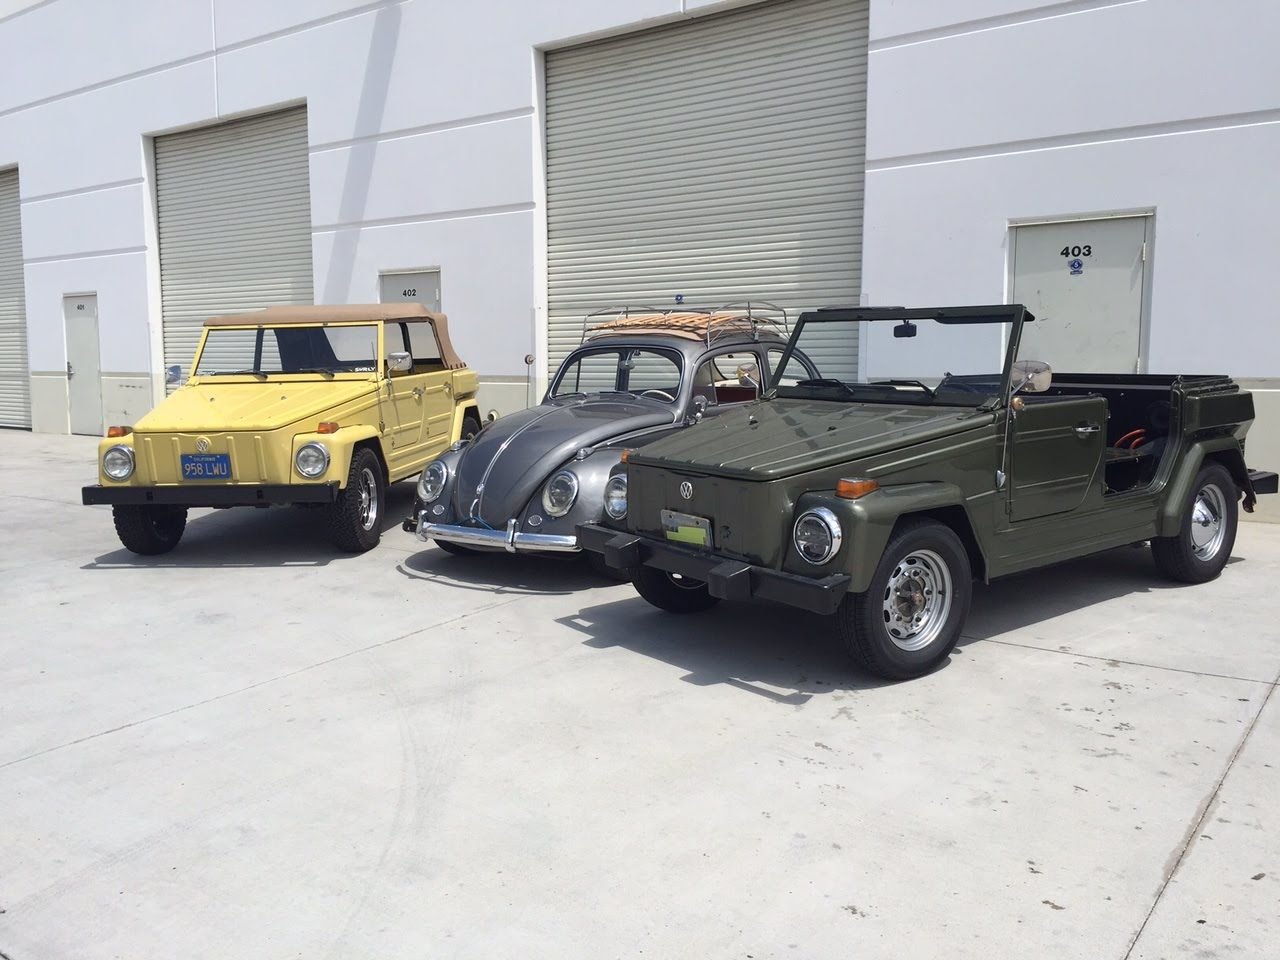 Very Excited About Our Next Vw Thing Build With Icon 4x4 Design Electric Karmann Ghia In Los Angeles Heres A Side By Gas Vs Comparison Icons Jonathan Ward